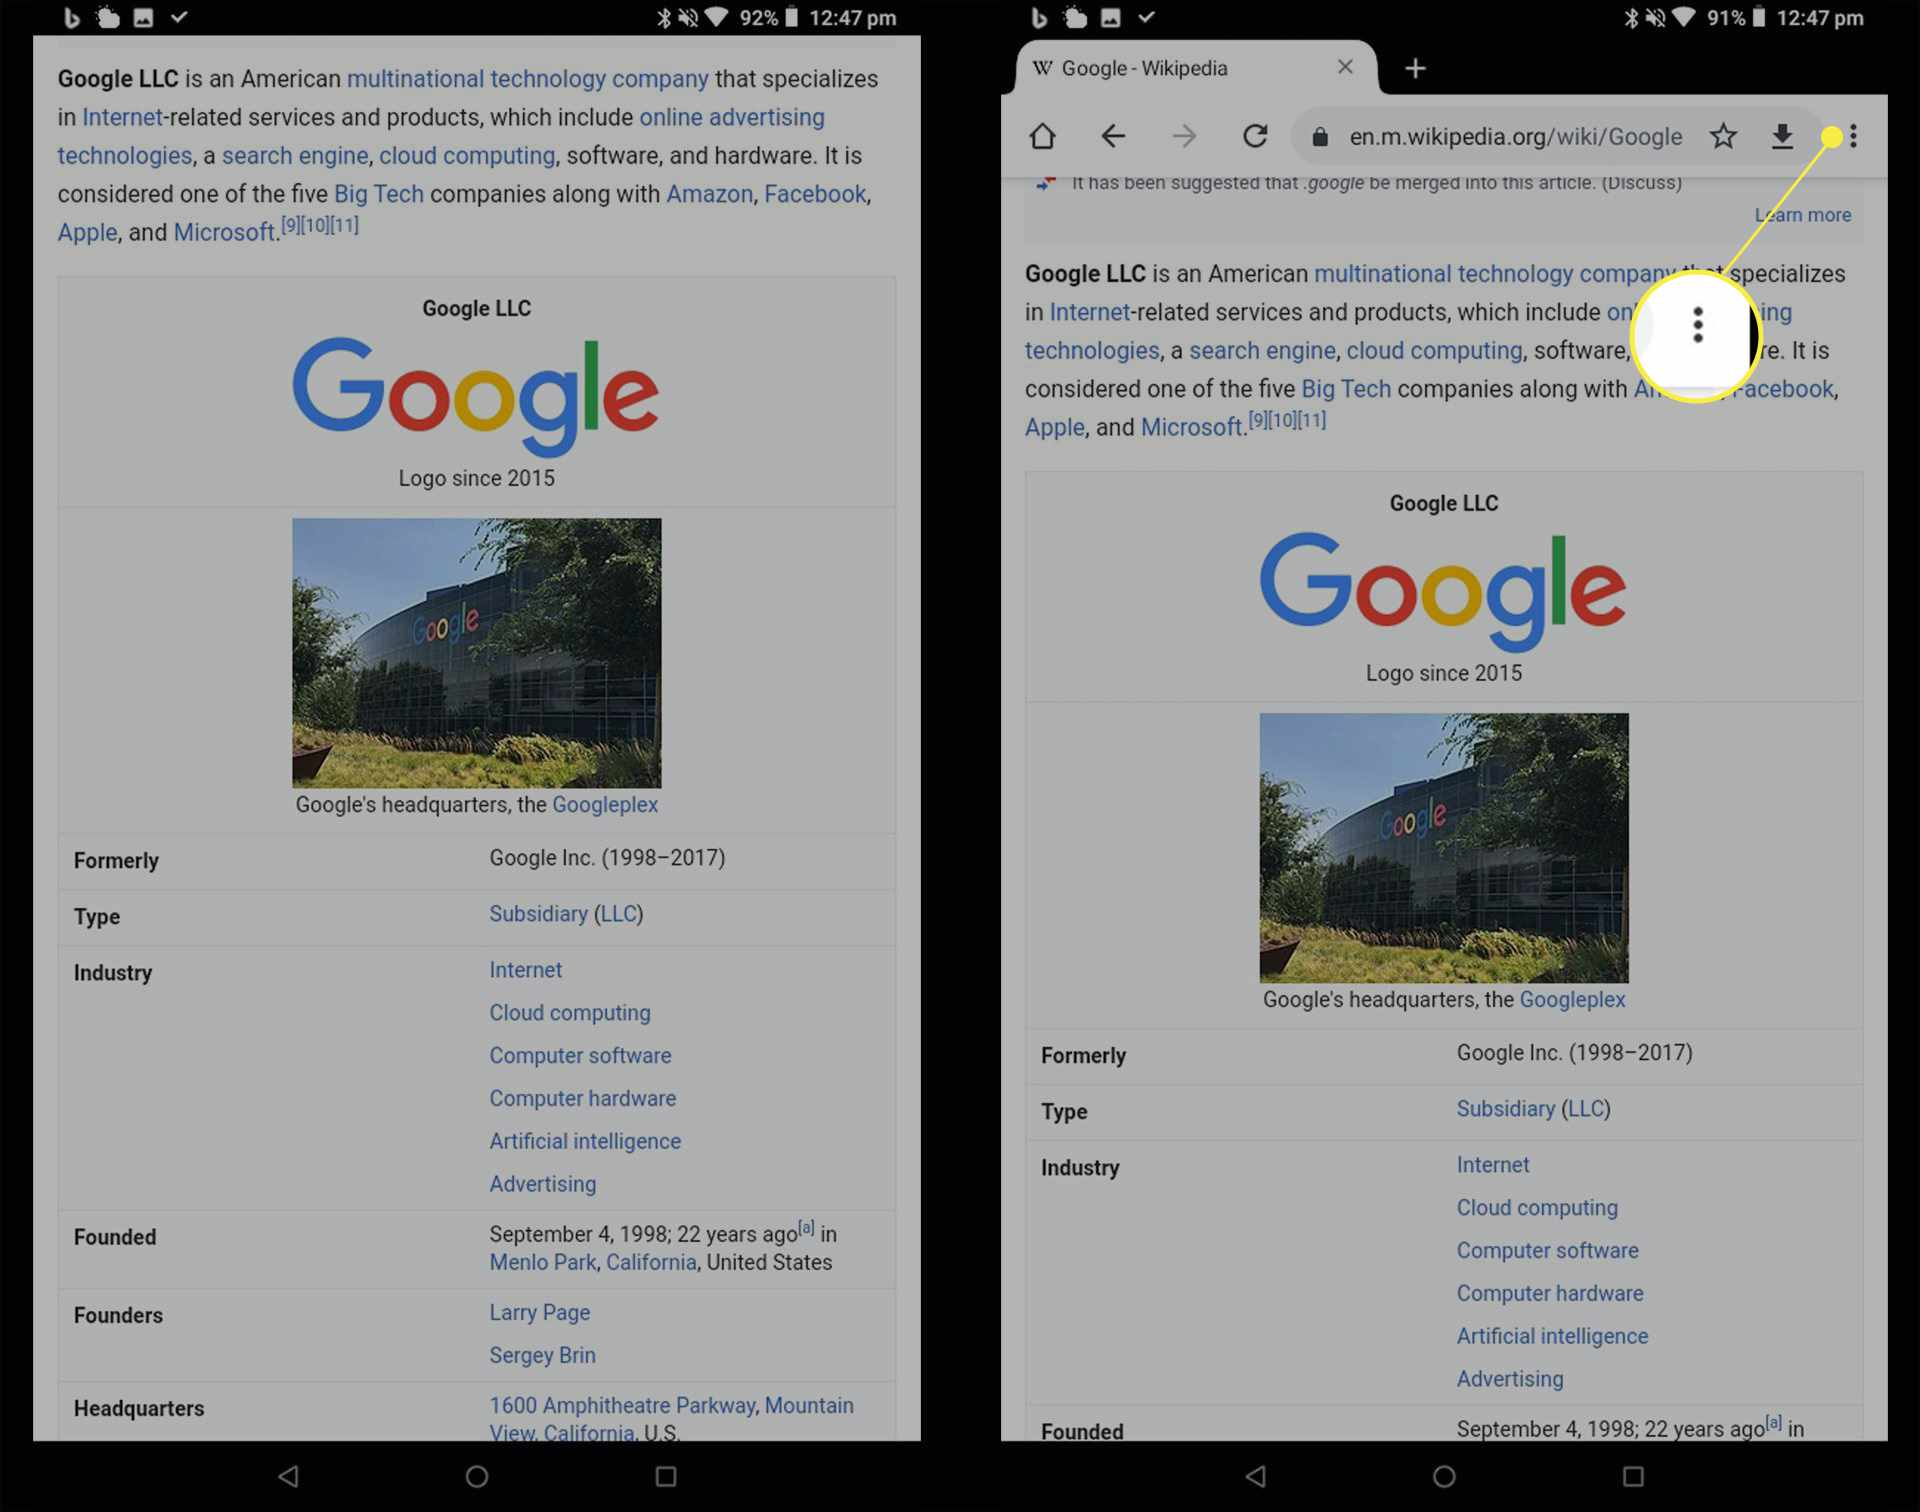 A Wikipedia web page open in the Chrome browser on an Android tablet with the Ellipsis icon highlighted